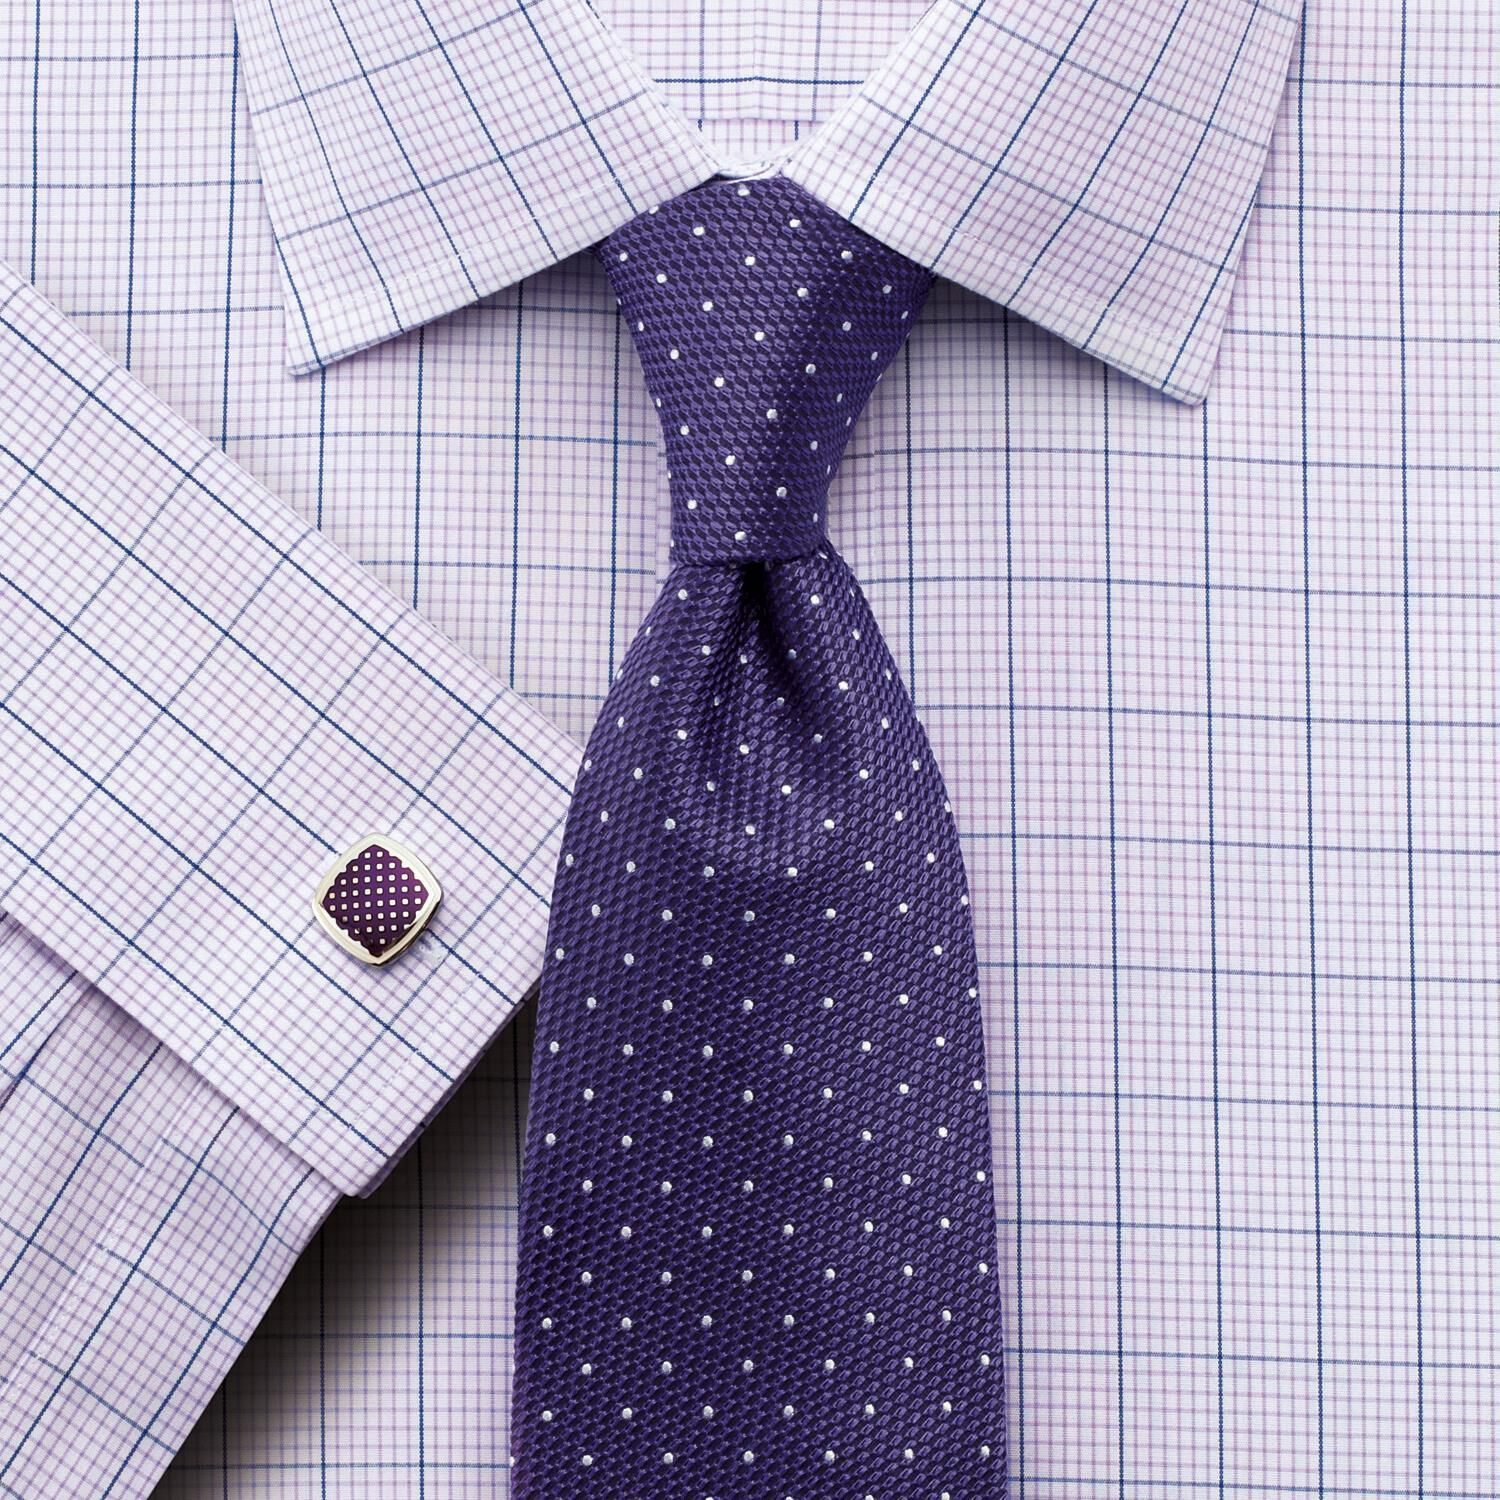 Charles Tyrwhitt Classic Fit Non-Iron Check Lilac Cotton Formal Shirt Size 15/35